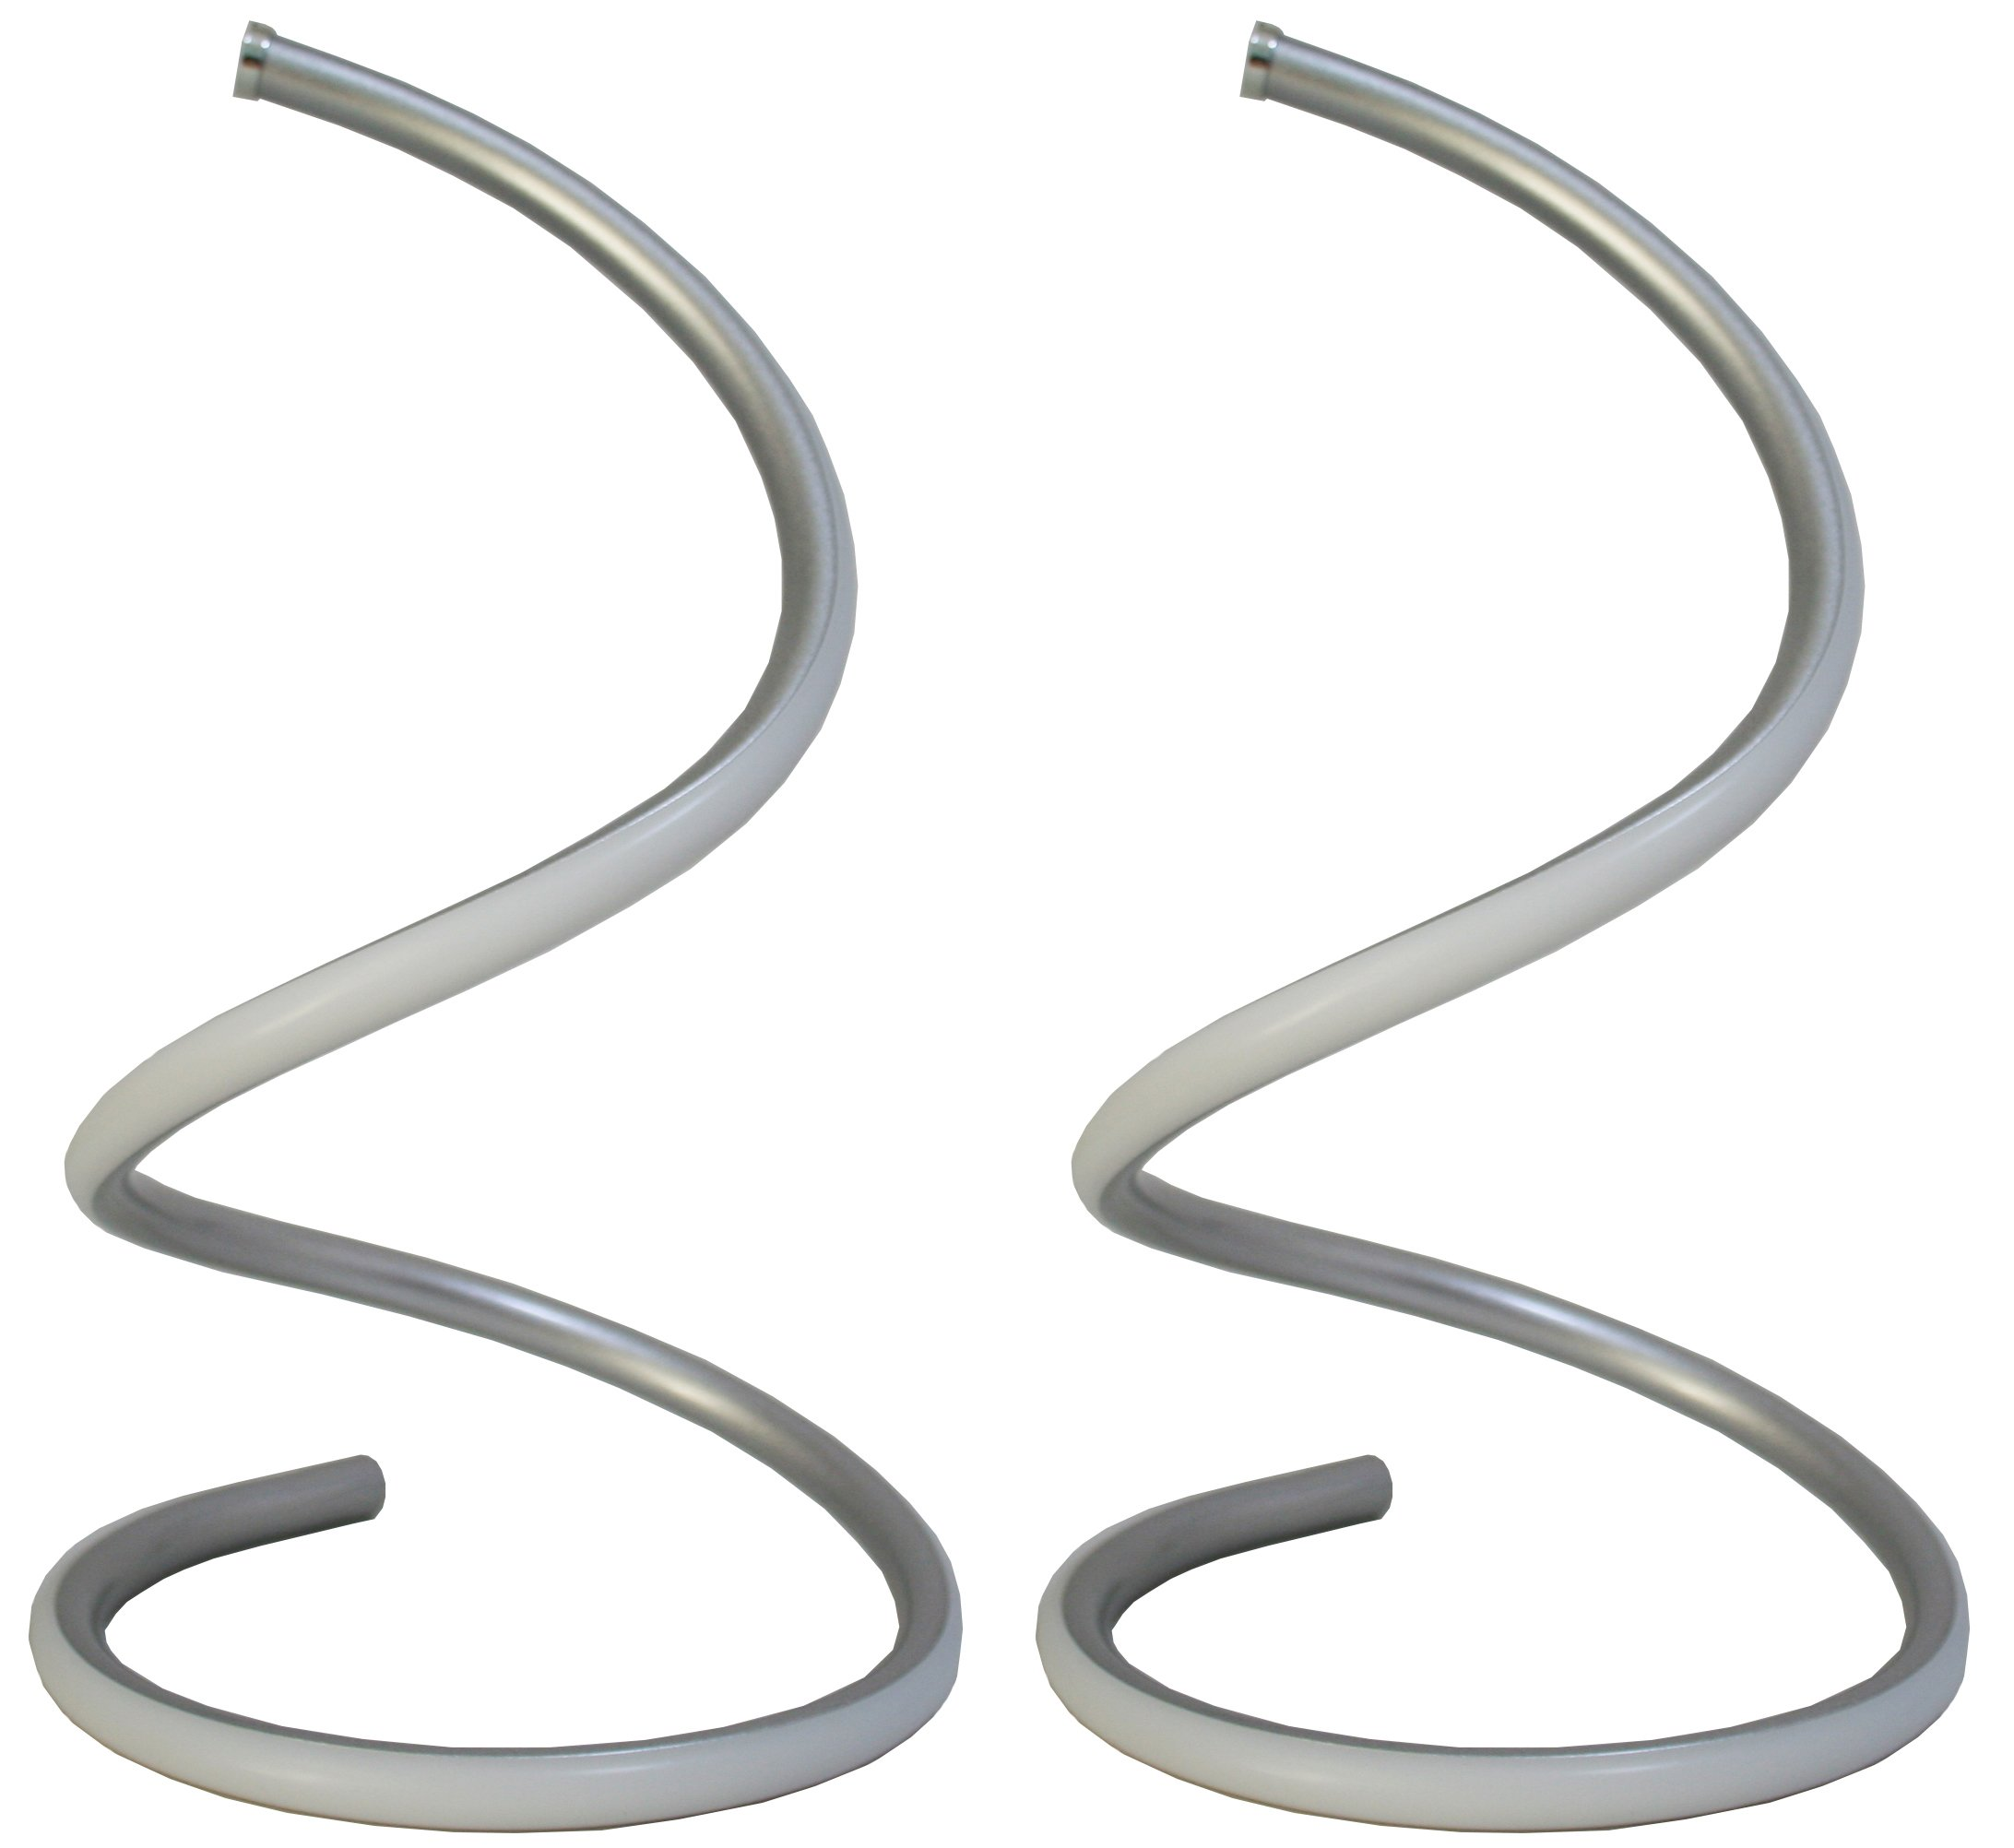 SkyeyArc Spiral LED Table Lamp, Curved LED Desk Lamp, Contemporary Minimalist Lighting Design, Cool White Light, Stepless Dimmable Light, 13W, Silver, Set of 2